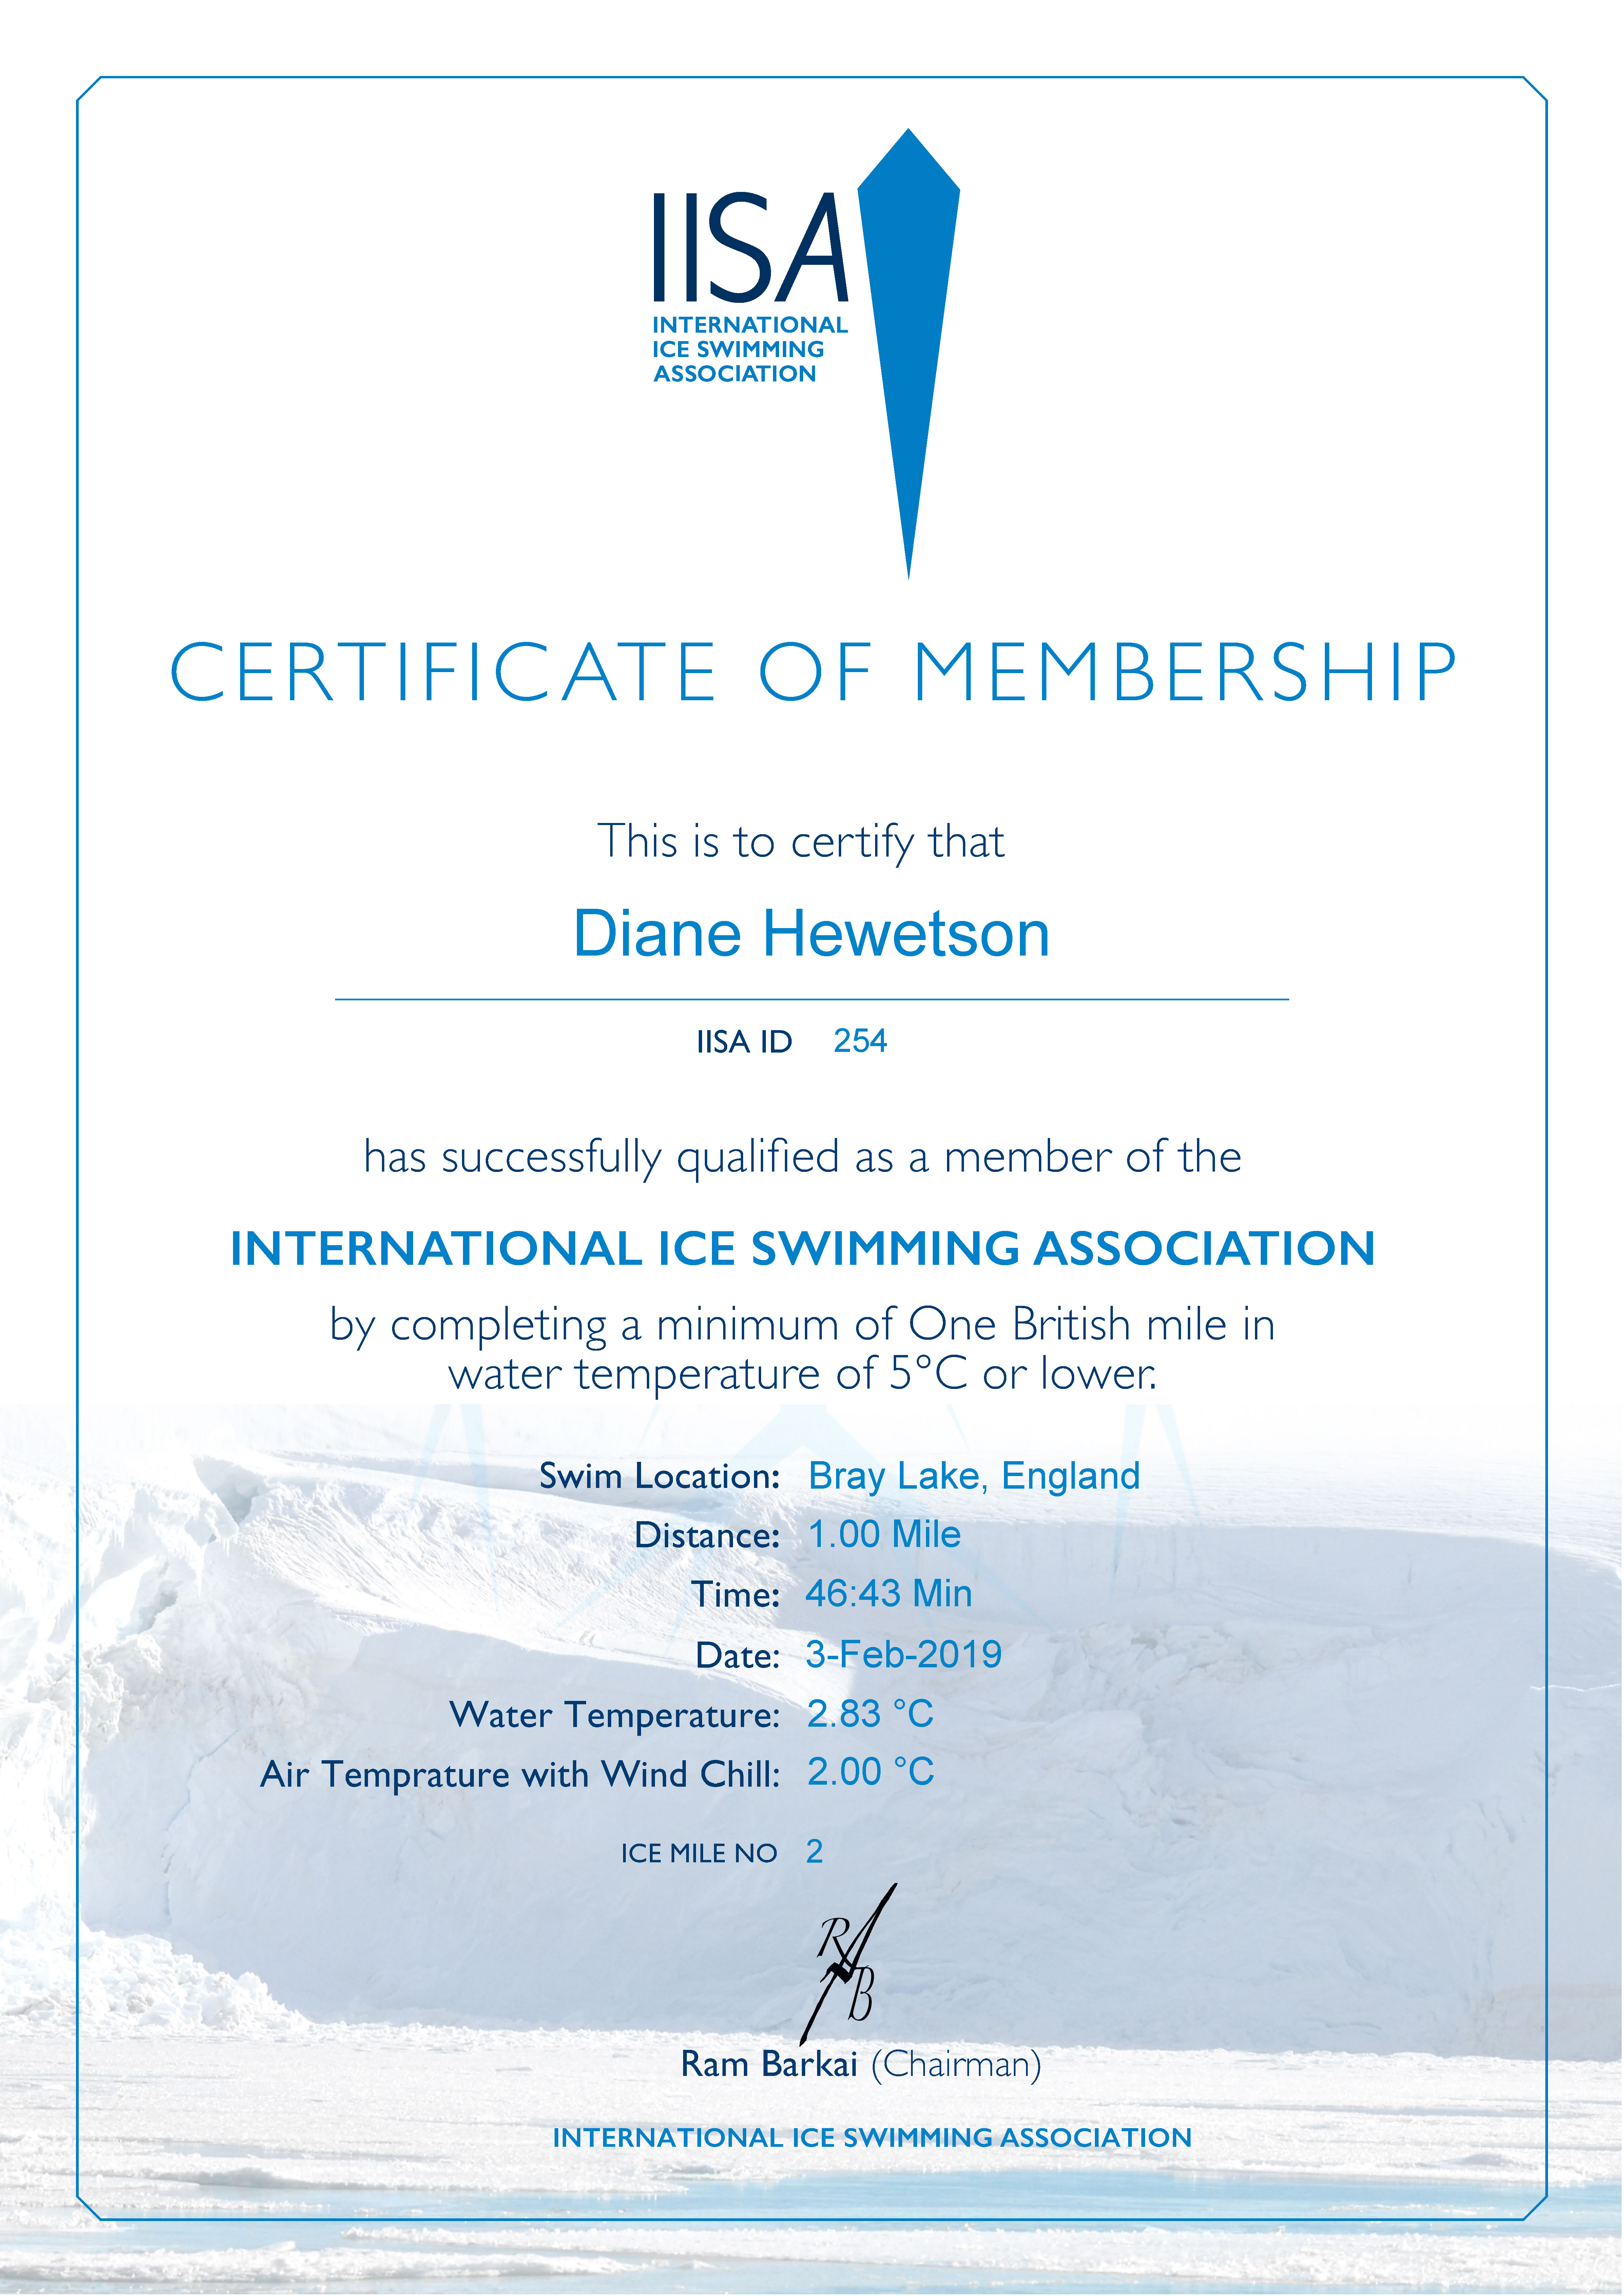 Ice Mile Certificate - Diane Hewetson